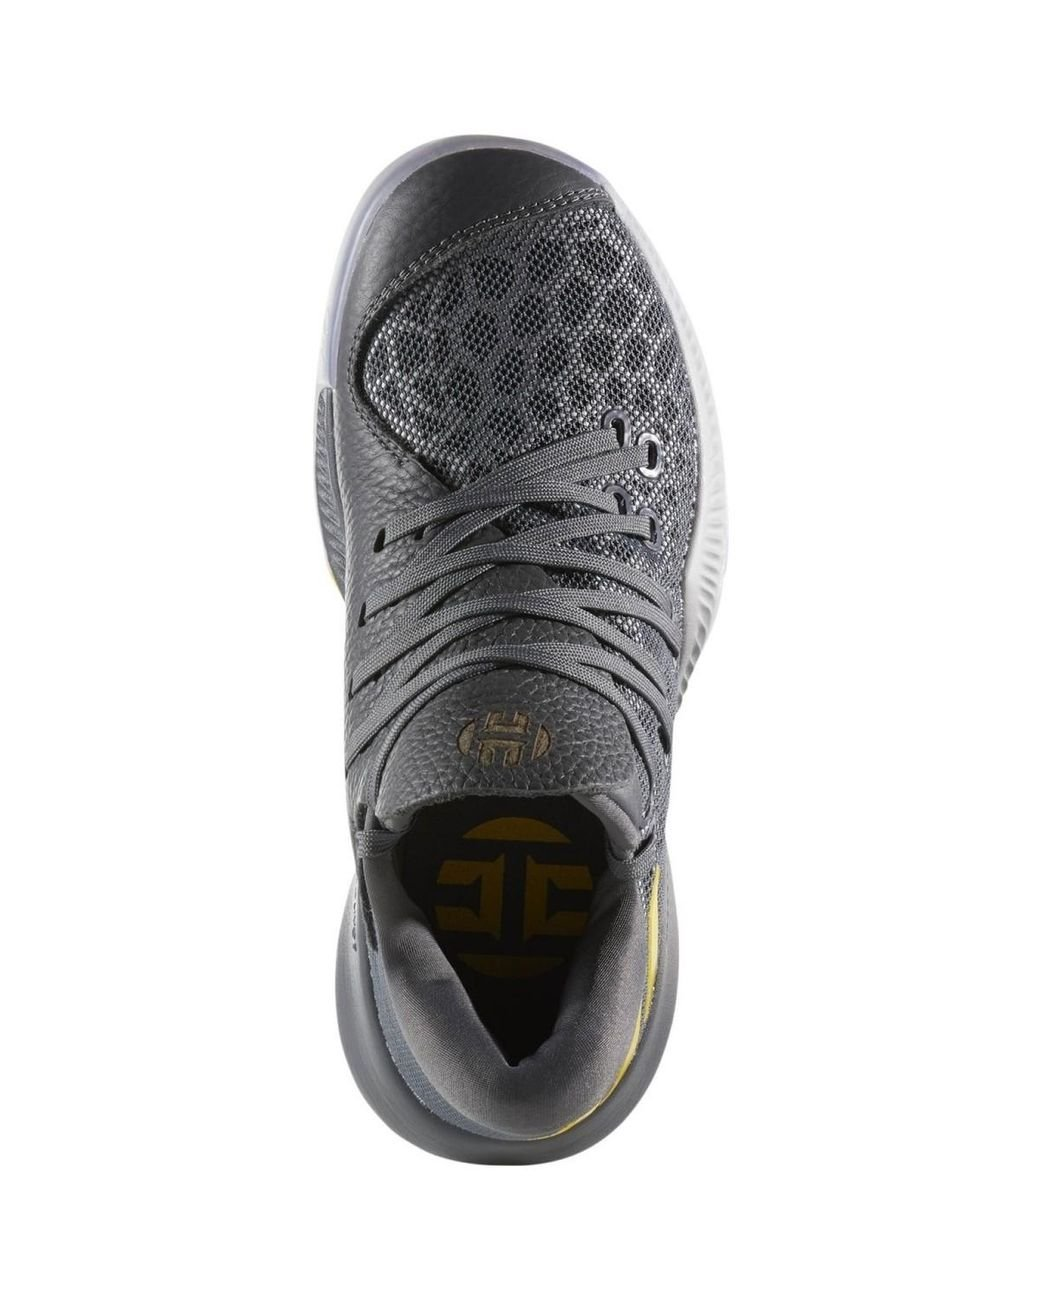 Chaussures de Basketball adida Chaussures adidas pour homme - Lyst